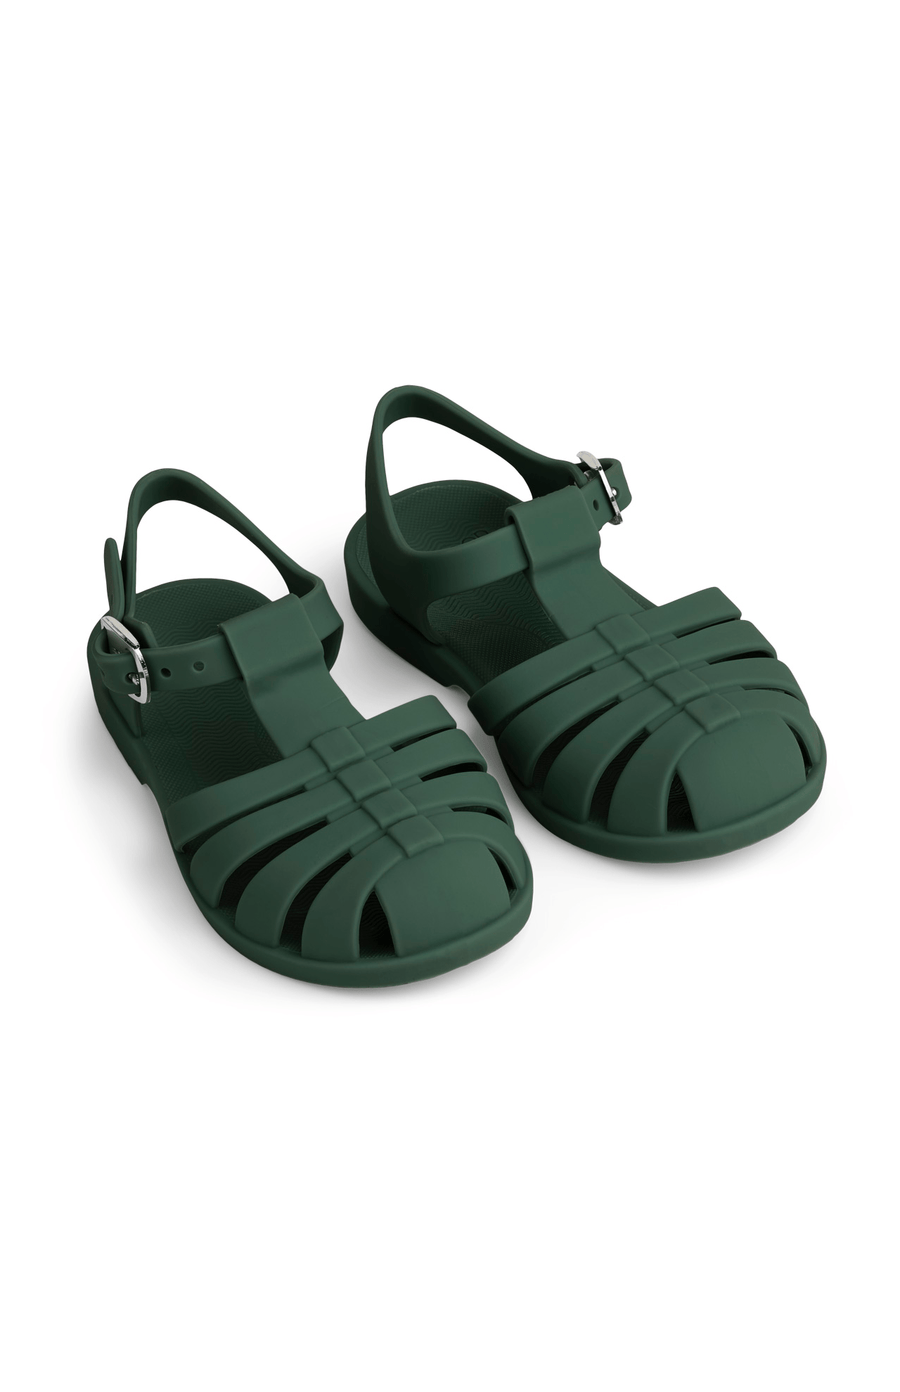 Liewood Bre Sandals - Garden Green